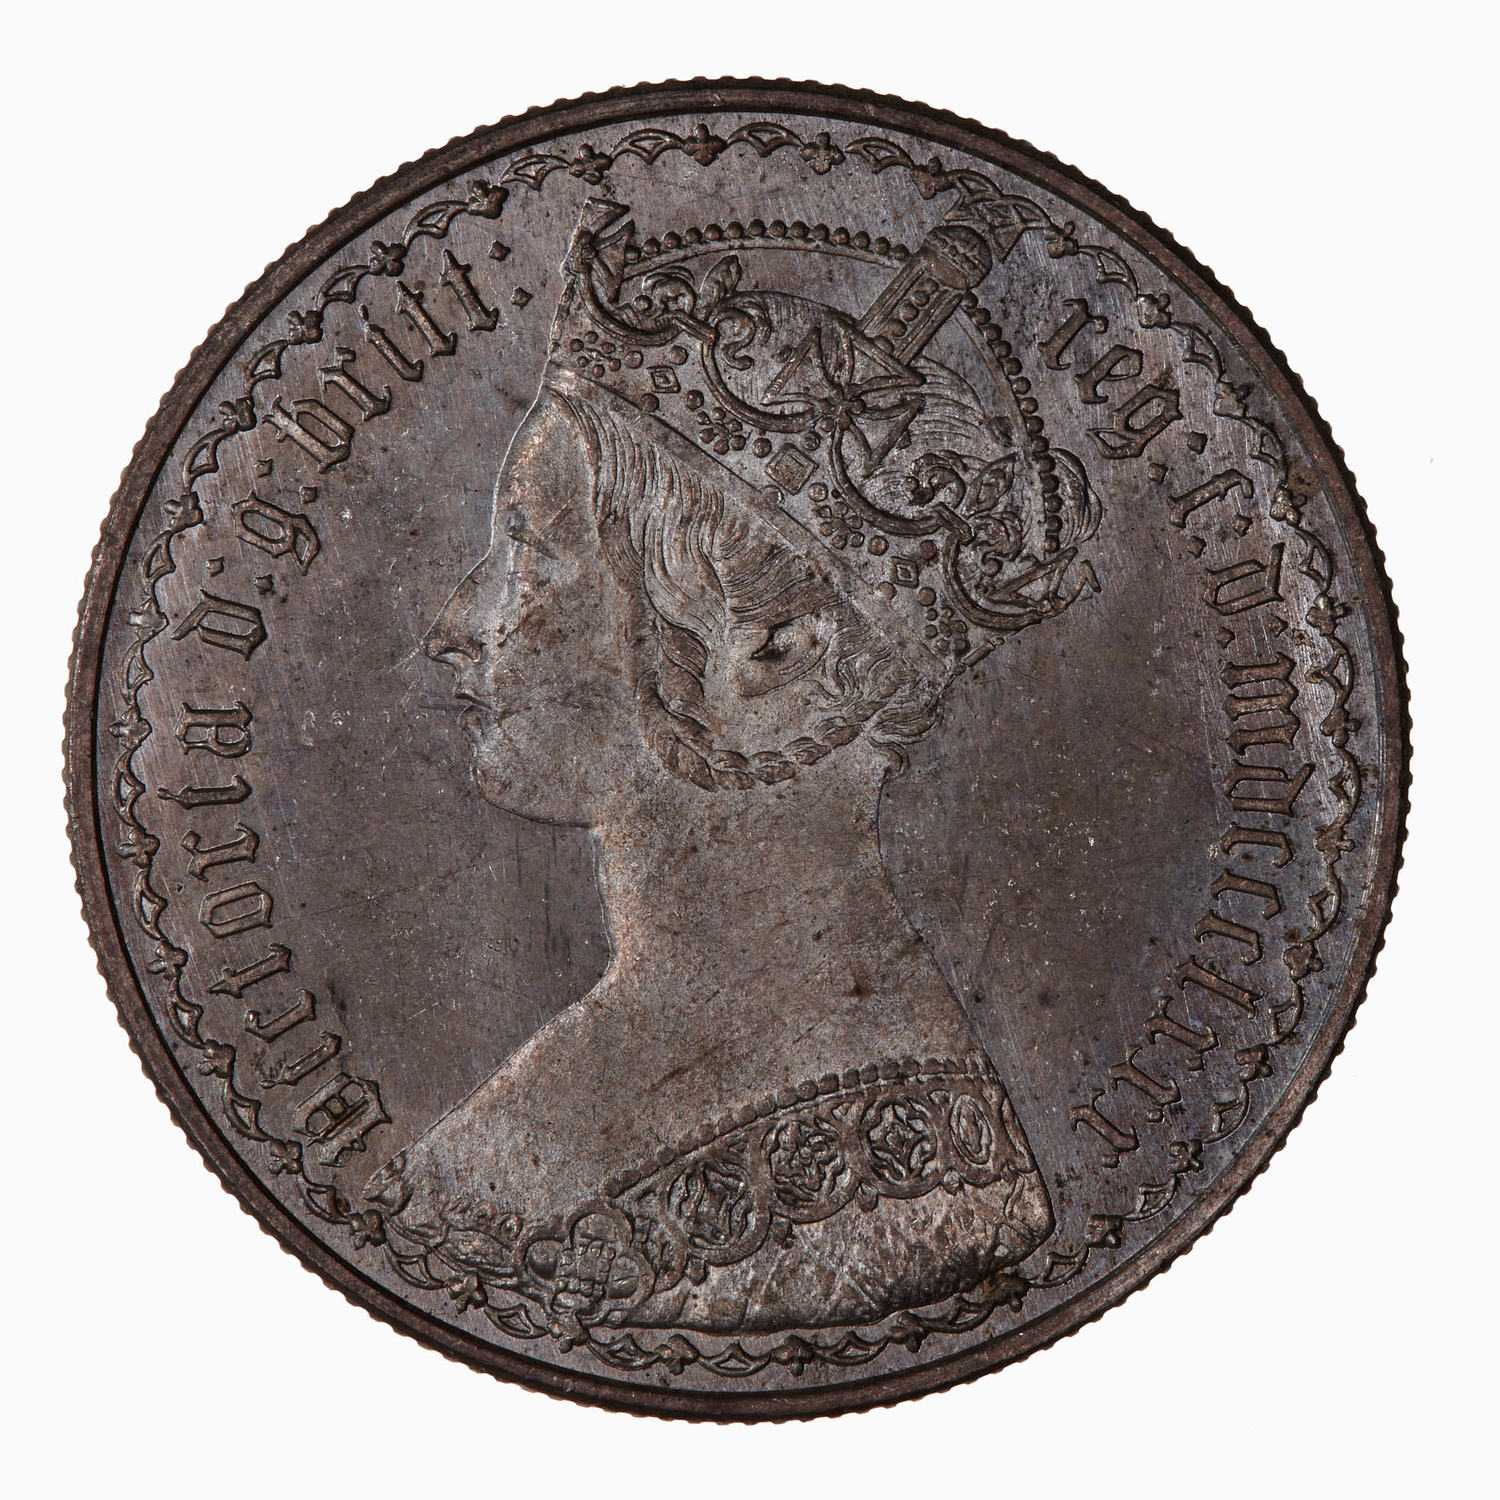 Florin 1880: Photo Coin - Florin, Queen Victoria, Great Britain, 1880